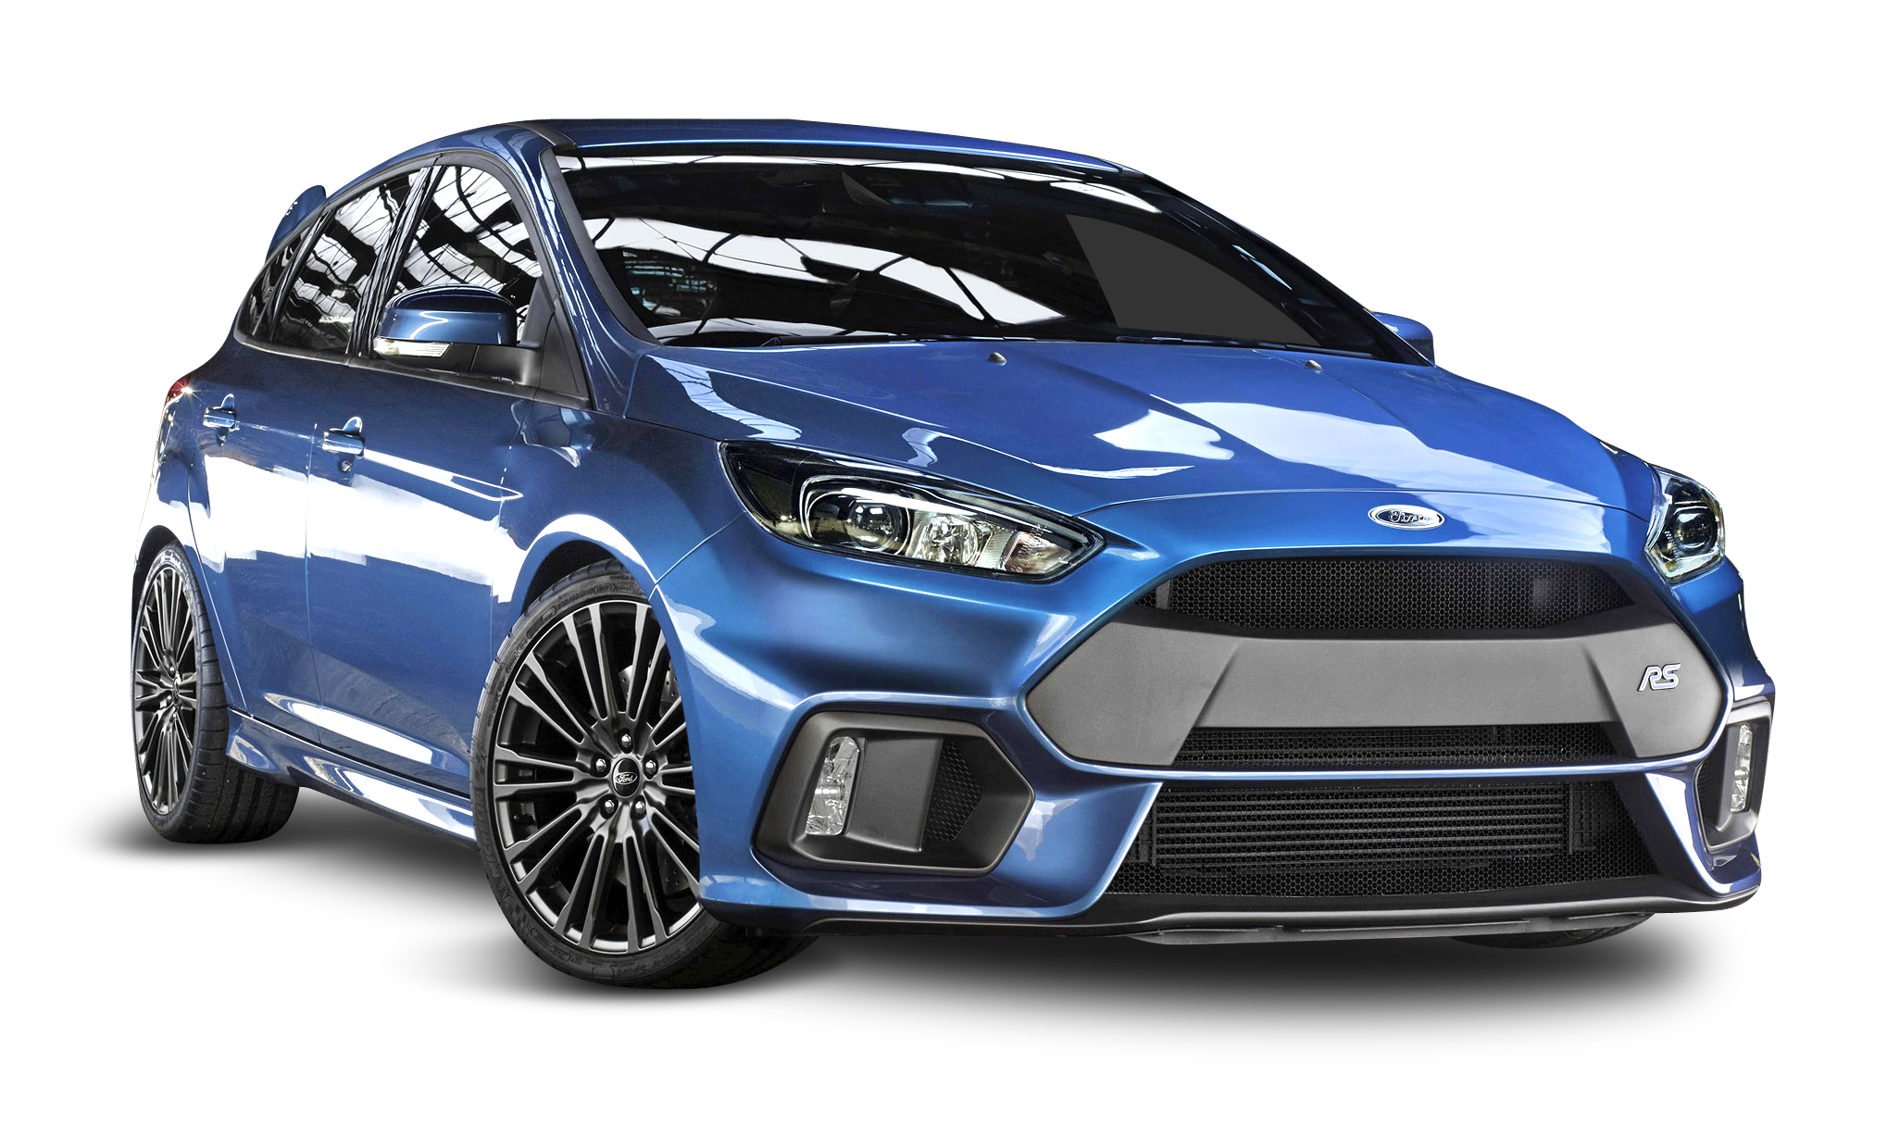 blue ford focus rs car png image purepng free transparent cc0 png image library. Black Bedroom Furniture Sets. Home Design Ideas